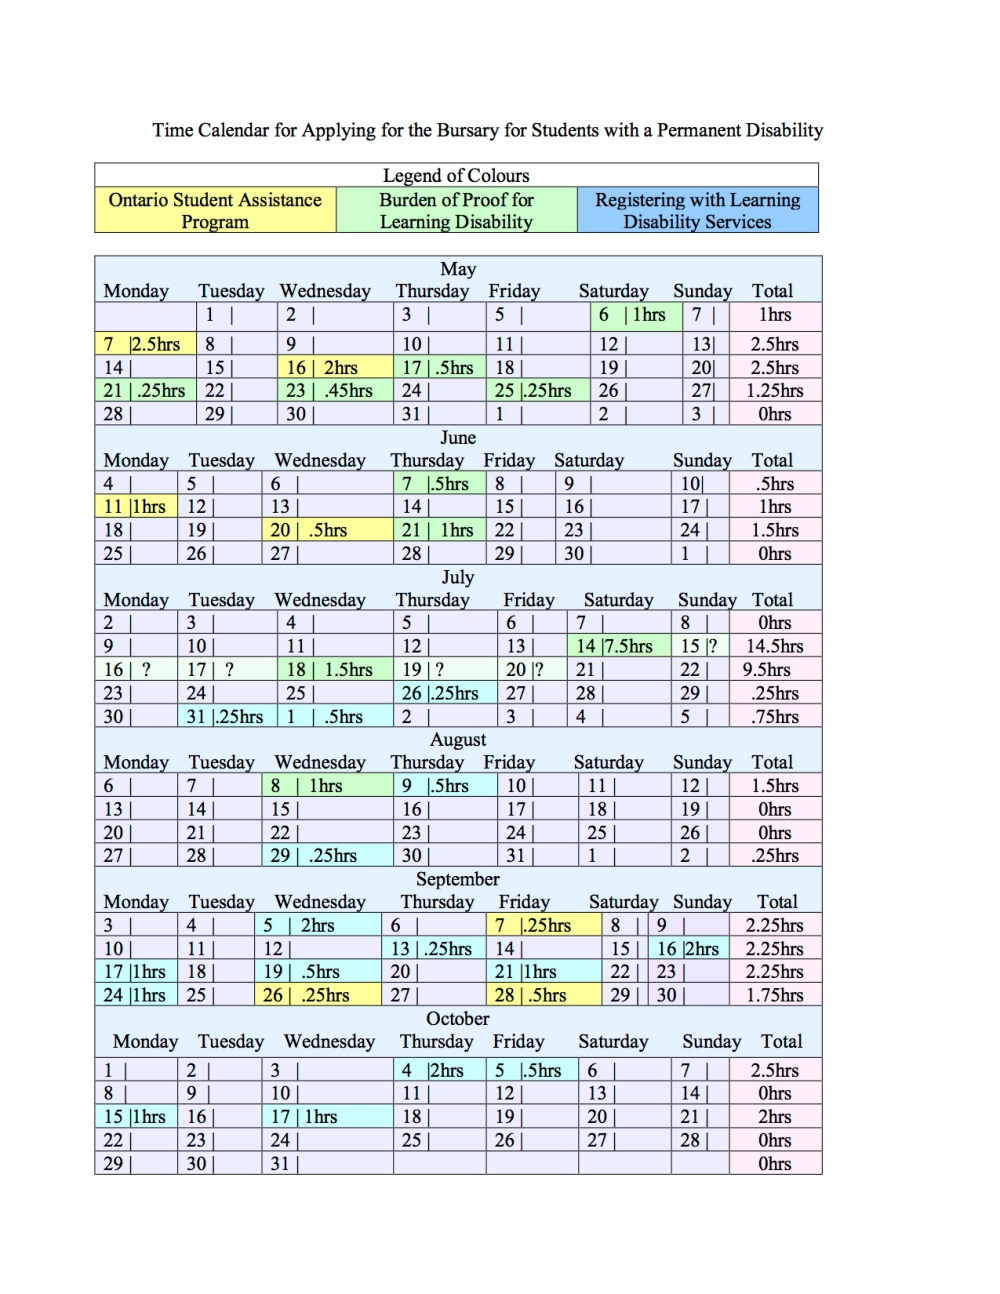 Time Calendar from May to October 2012 that I spend in order to access accommodations.